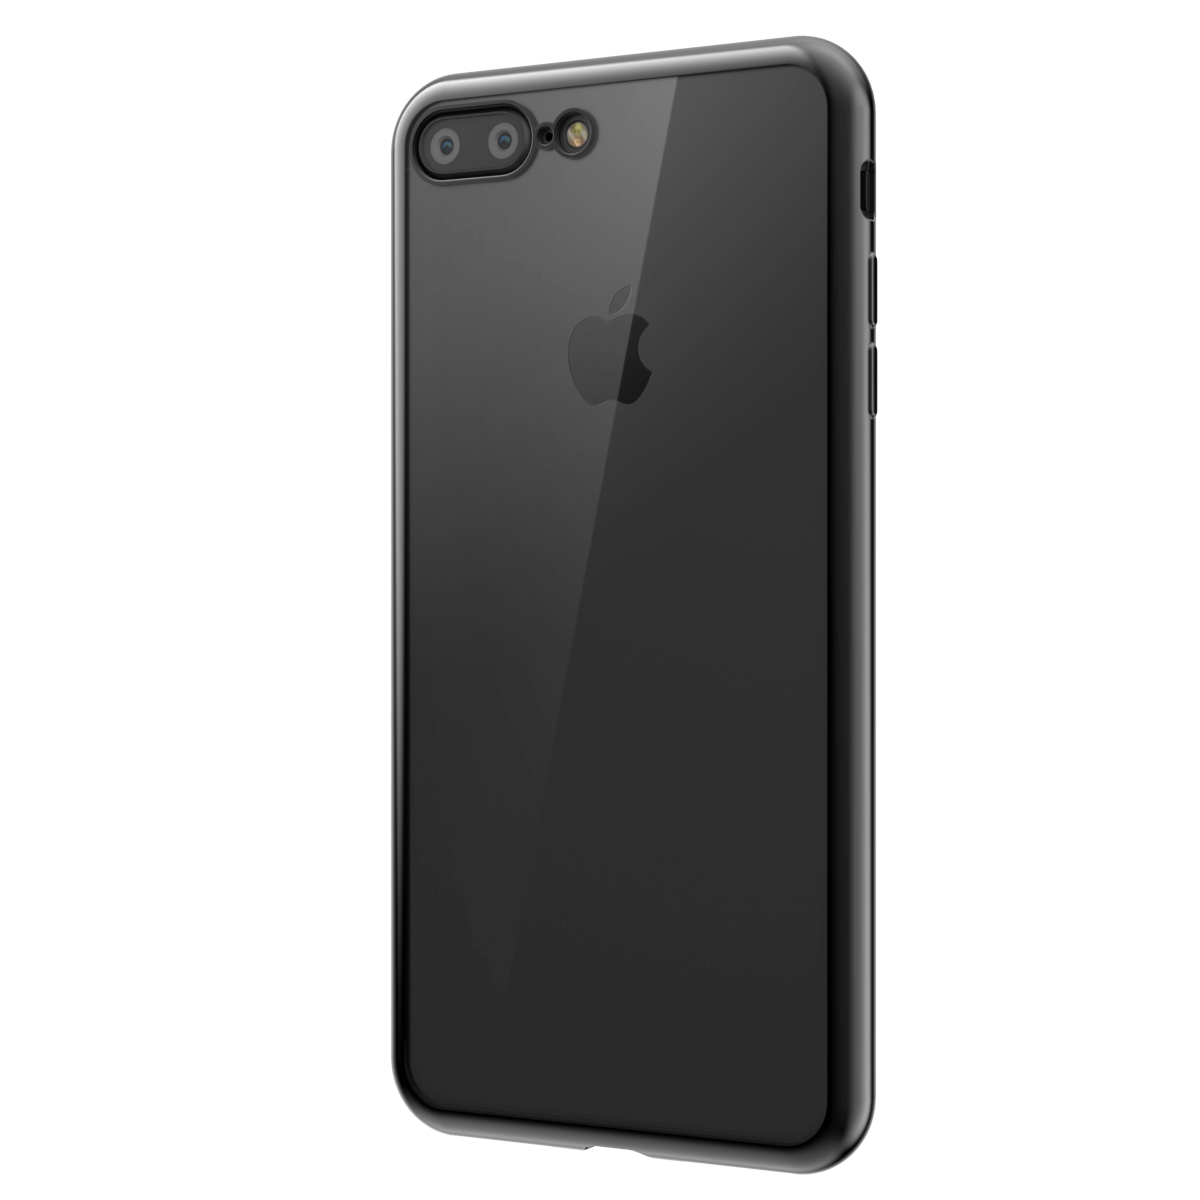 Iphone 7 plus transparent png. Switcheasy flash case for